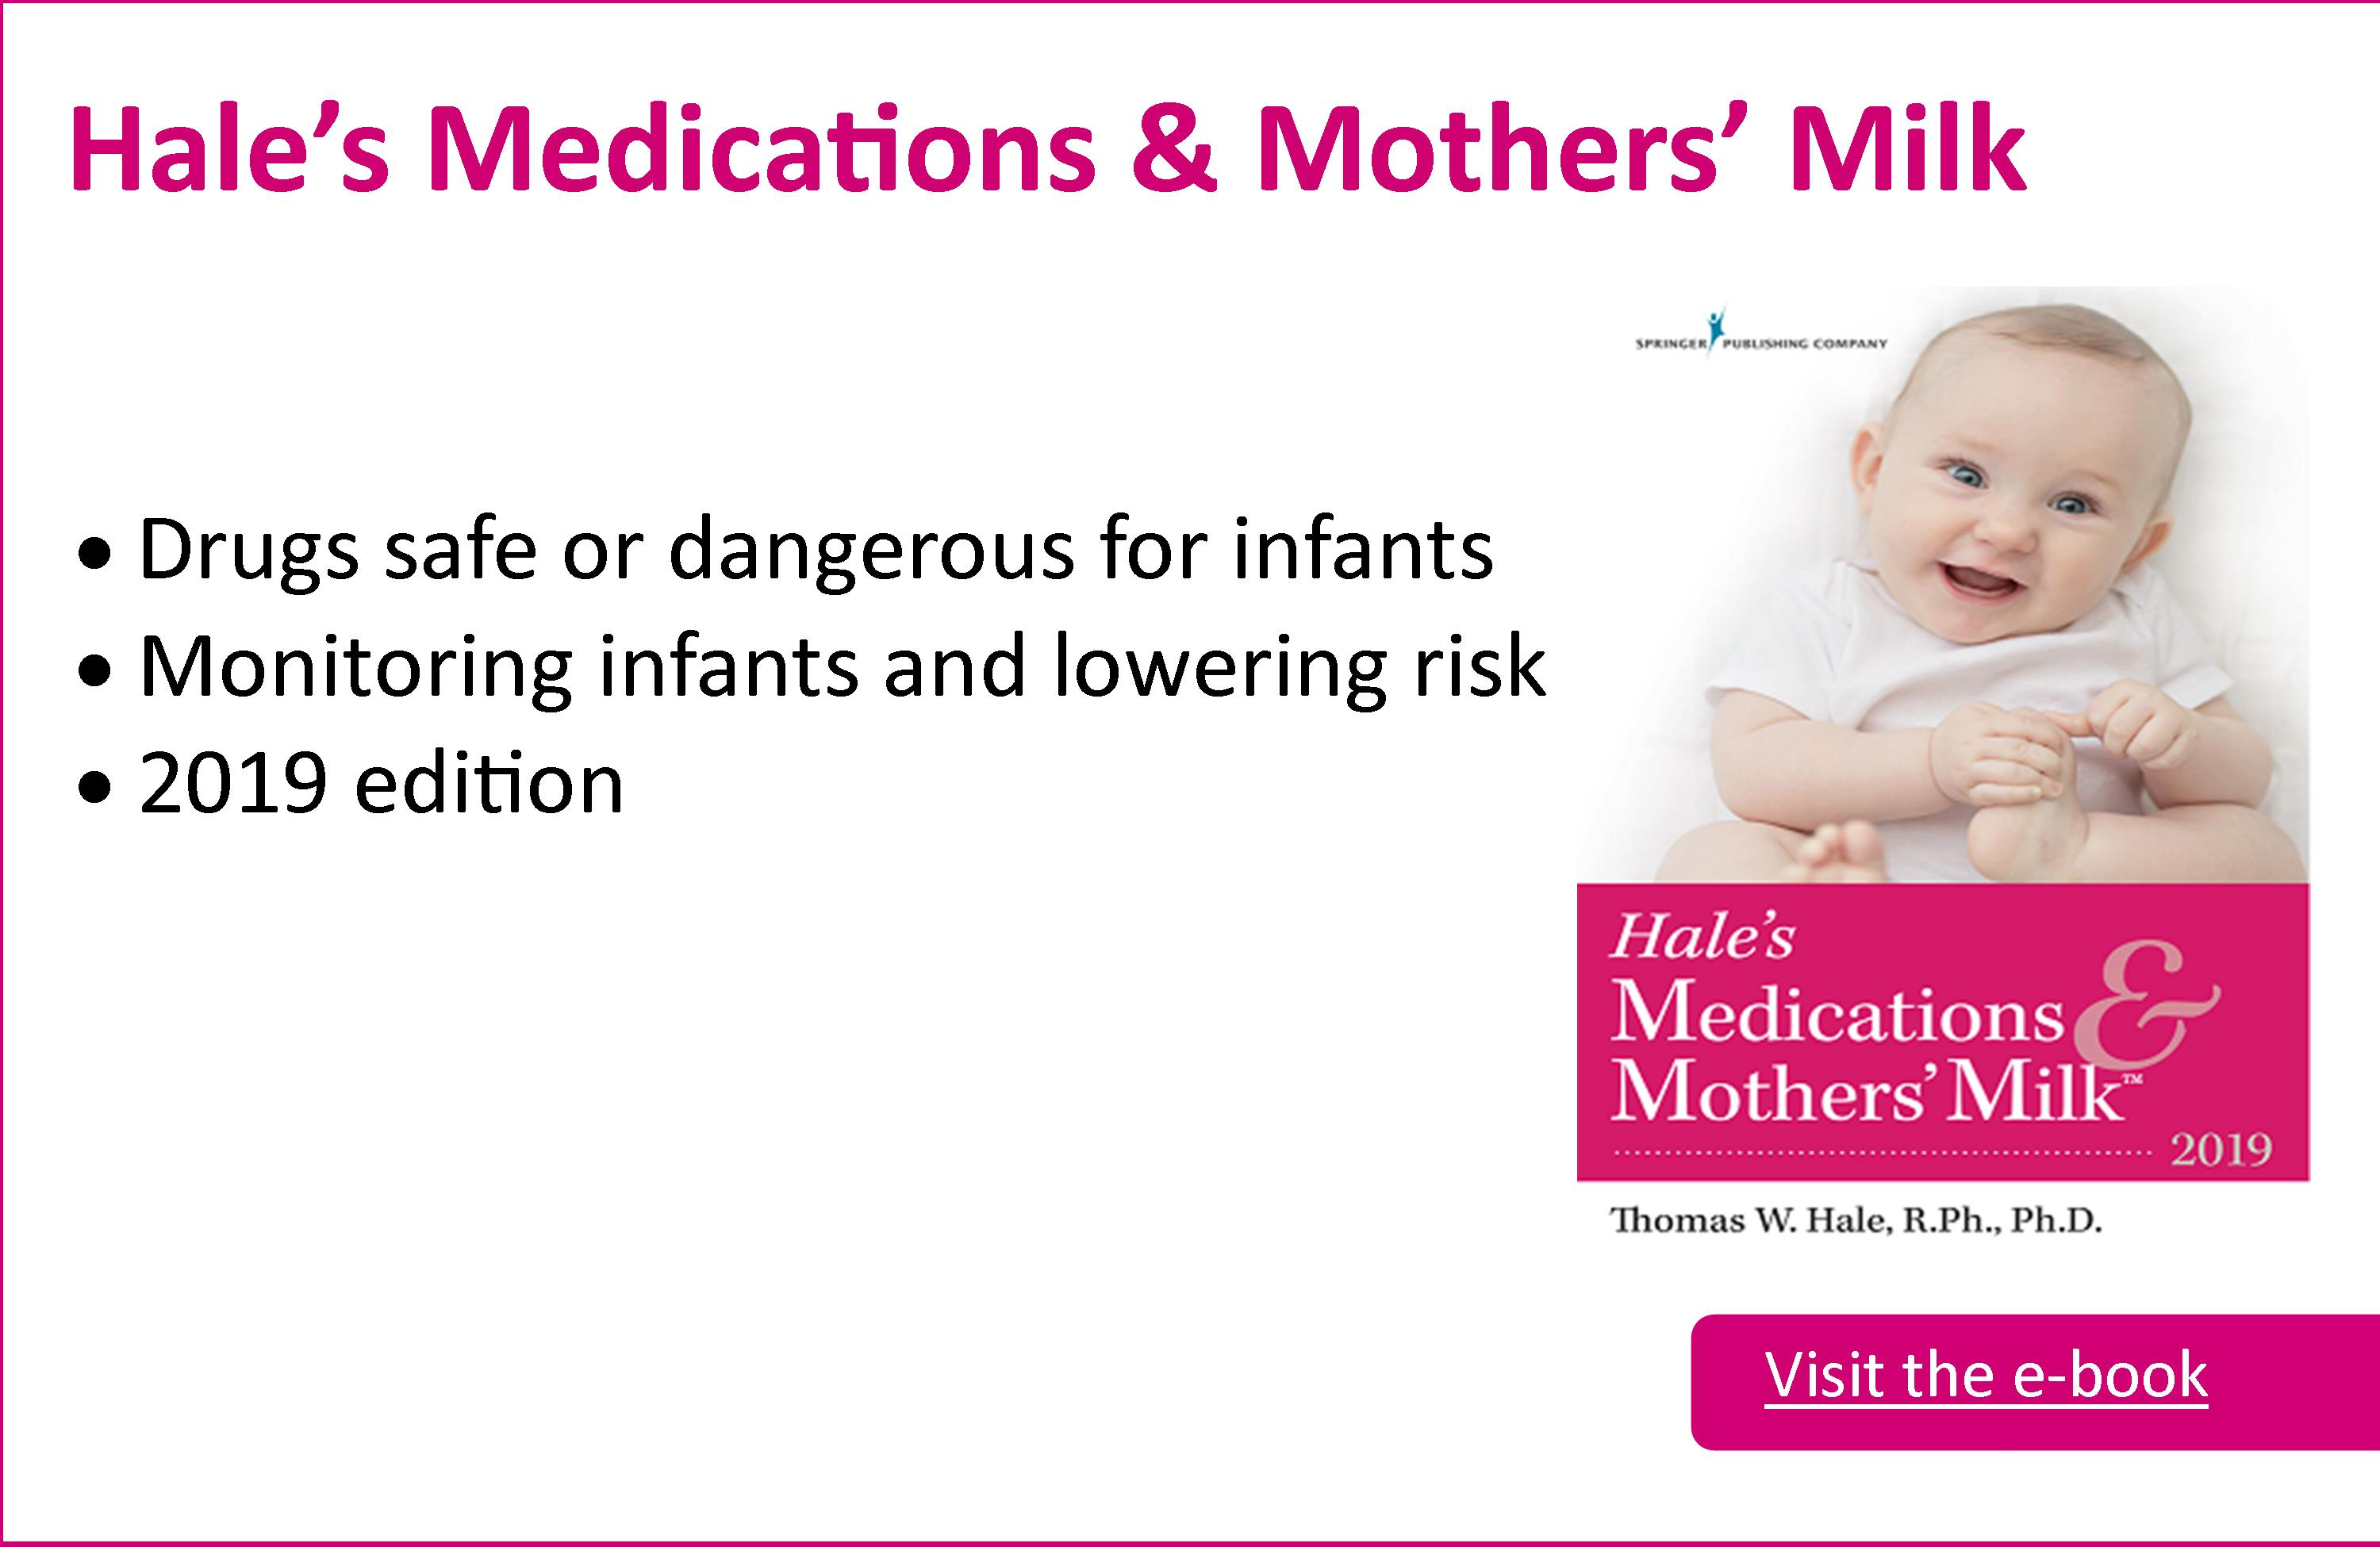 Medications & Mothers' Milk